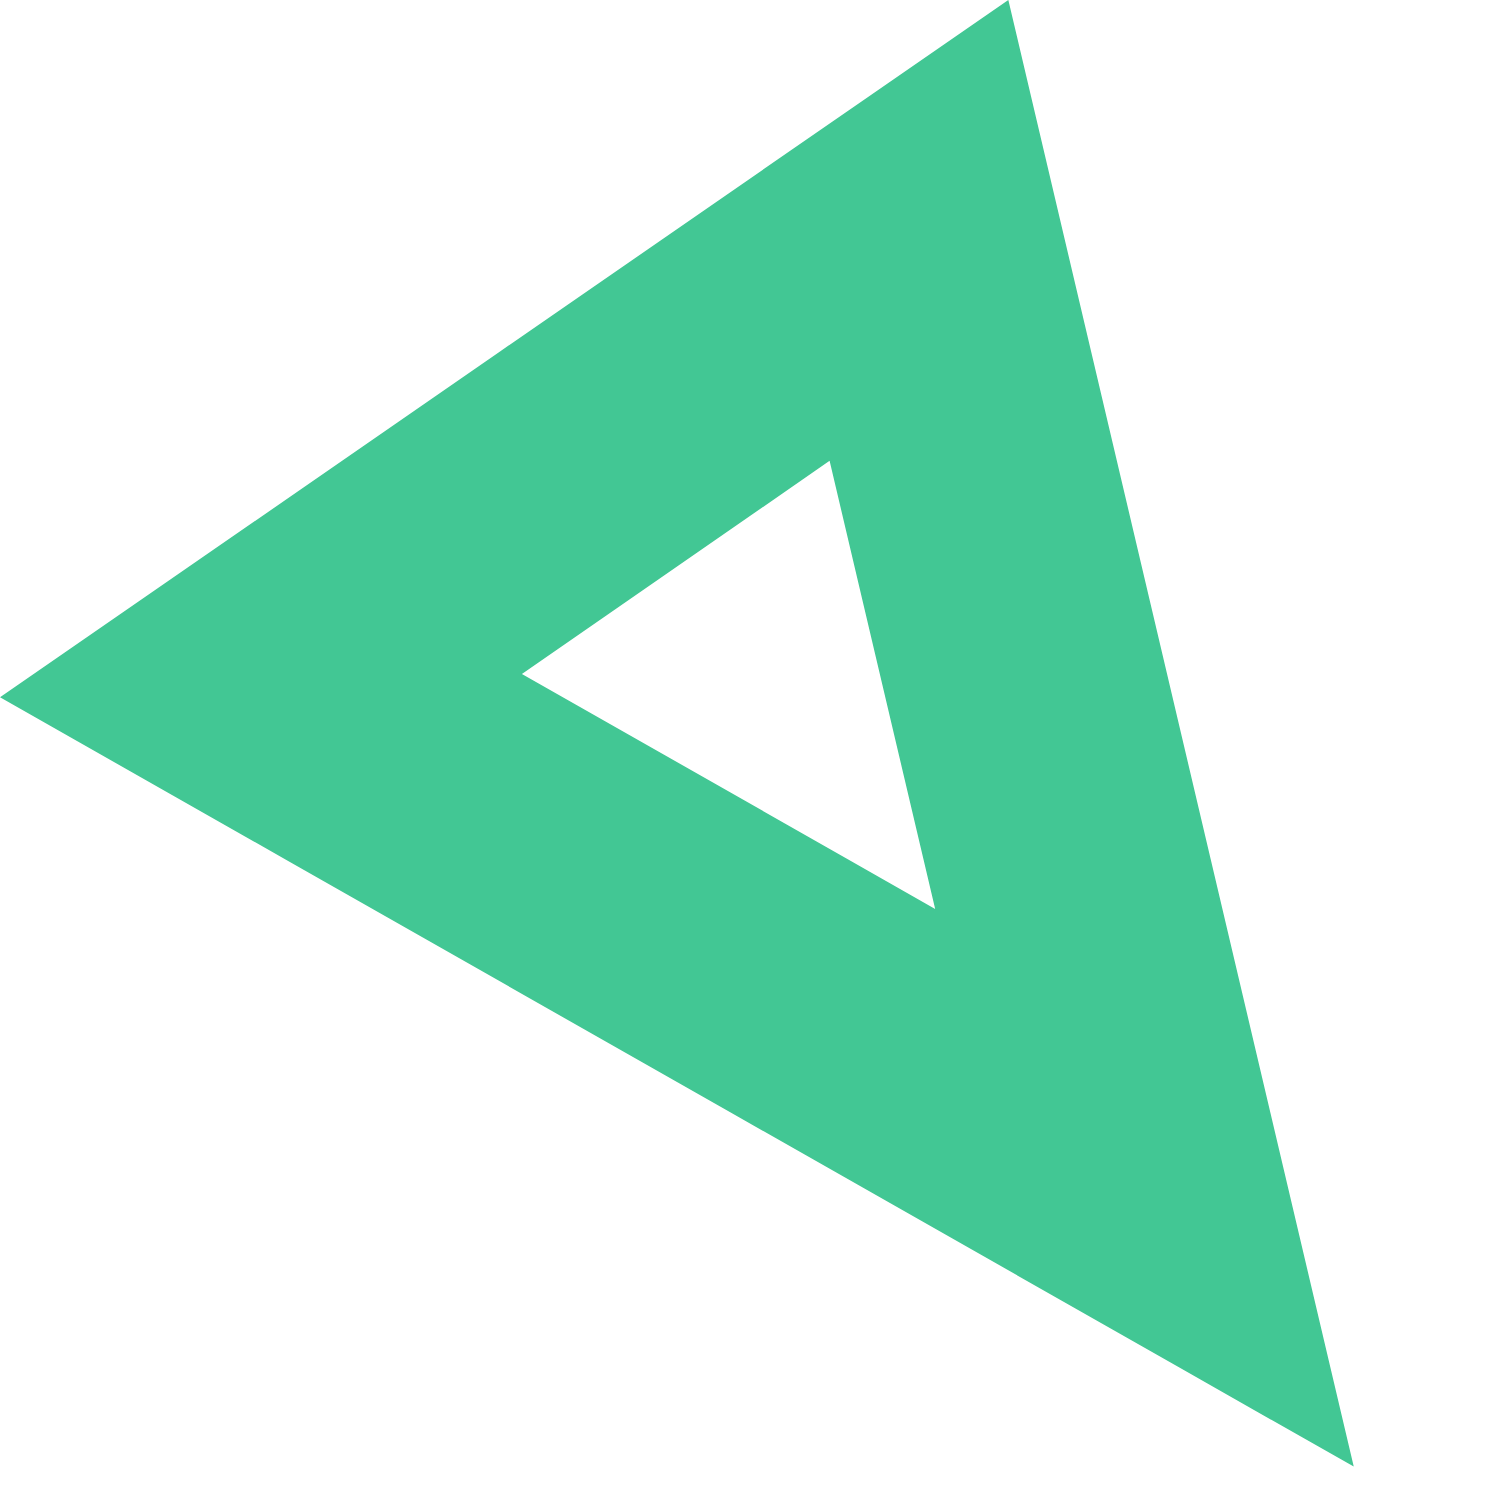 green decorative triangle